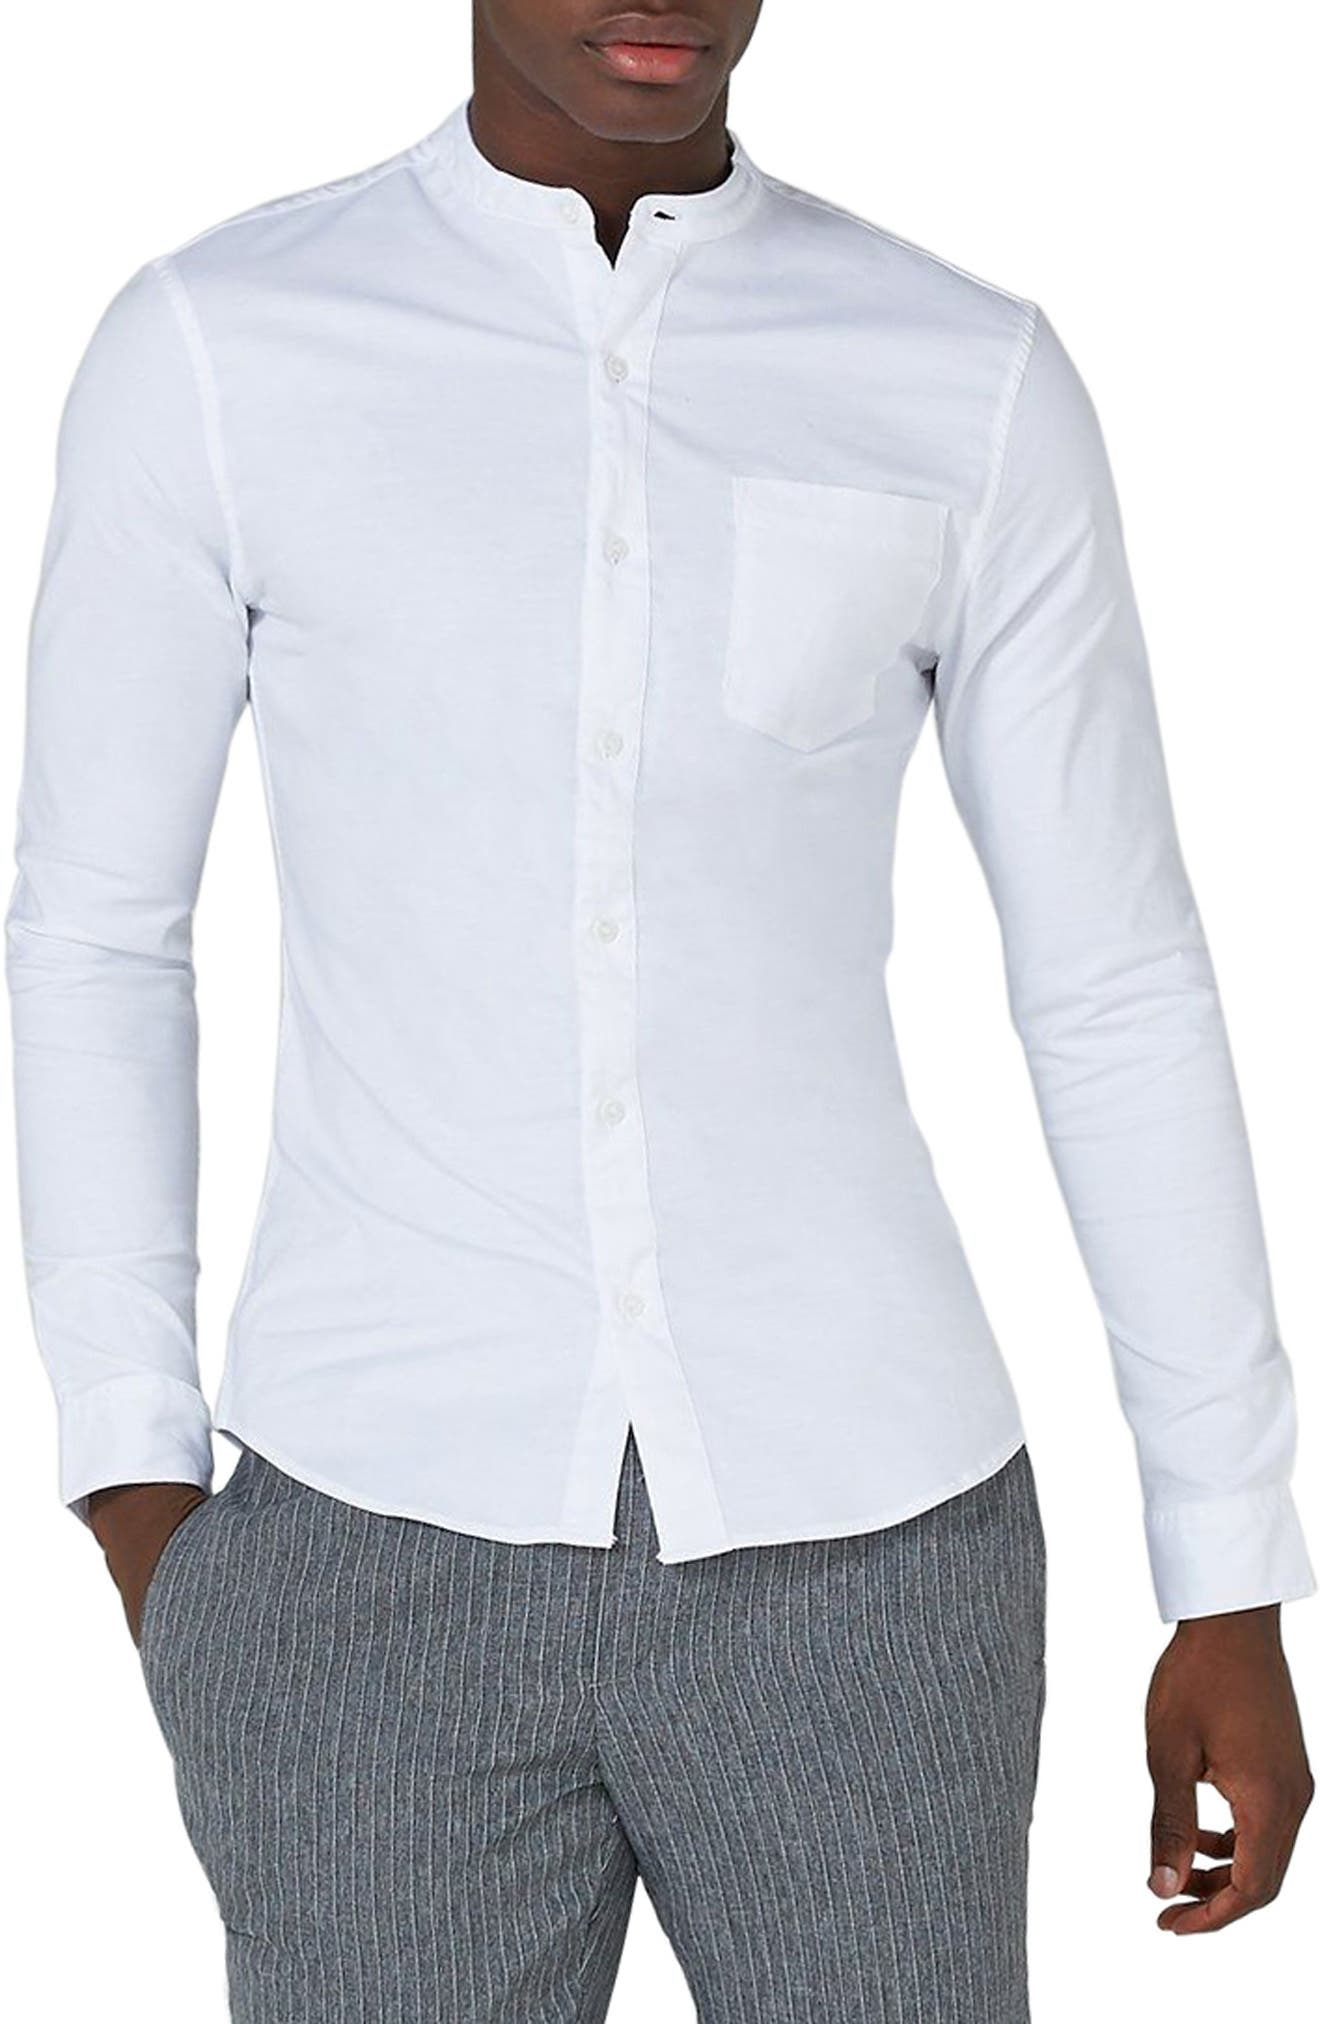 Muscle Fit Band Collar Shirt,                         Main,                         color, WHITE